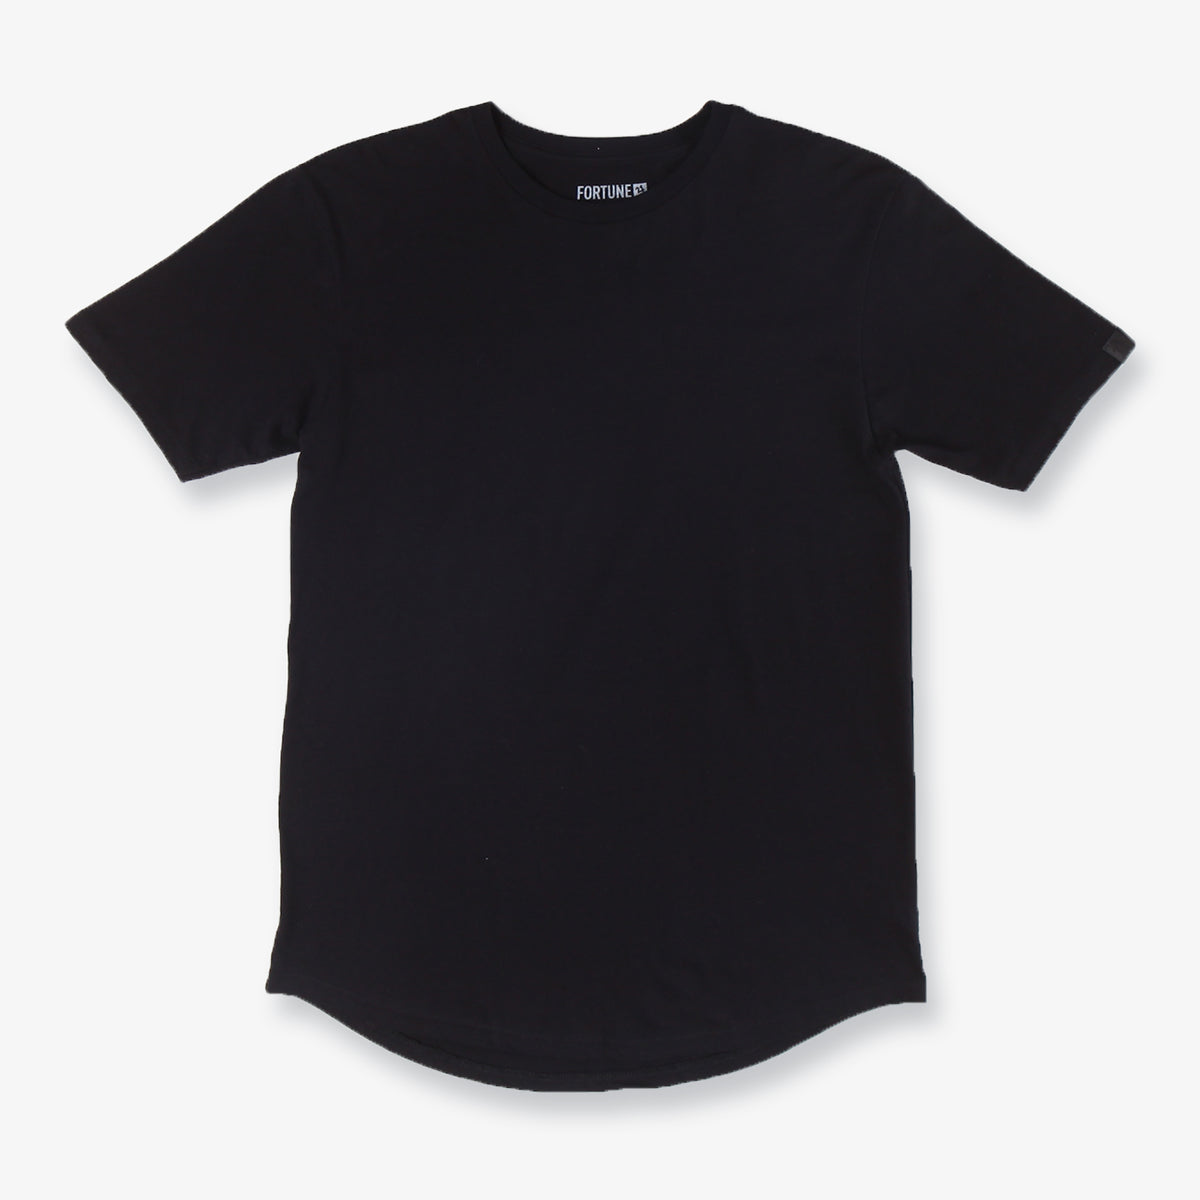 Raised Tall Tee - Black